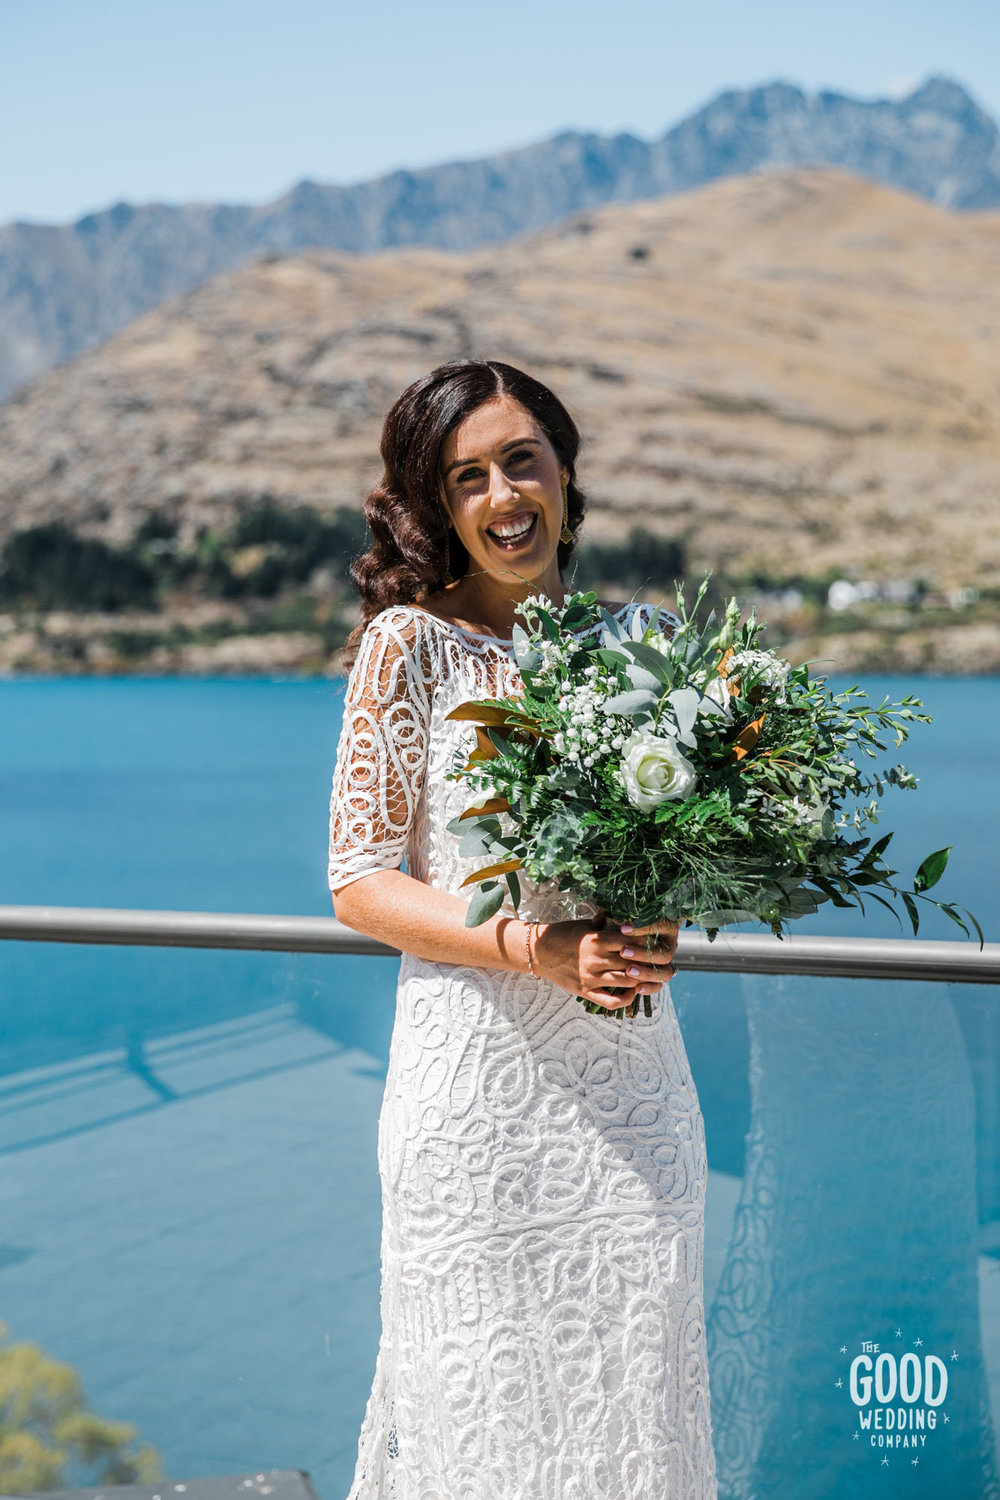 The-Good-Wedding-Company-LaurenLukas-Peregrine-Winery-Wanaka-Photographer-90.jpg